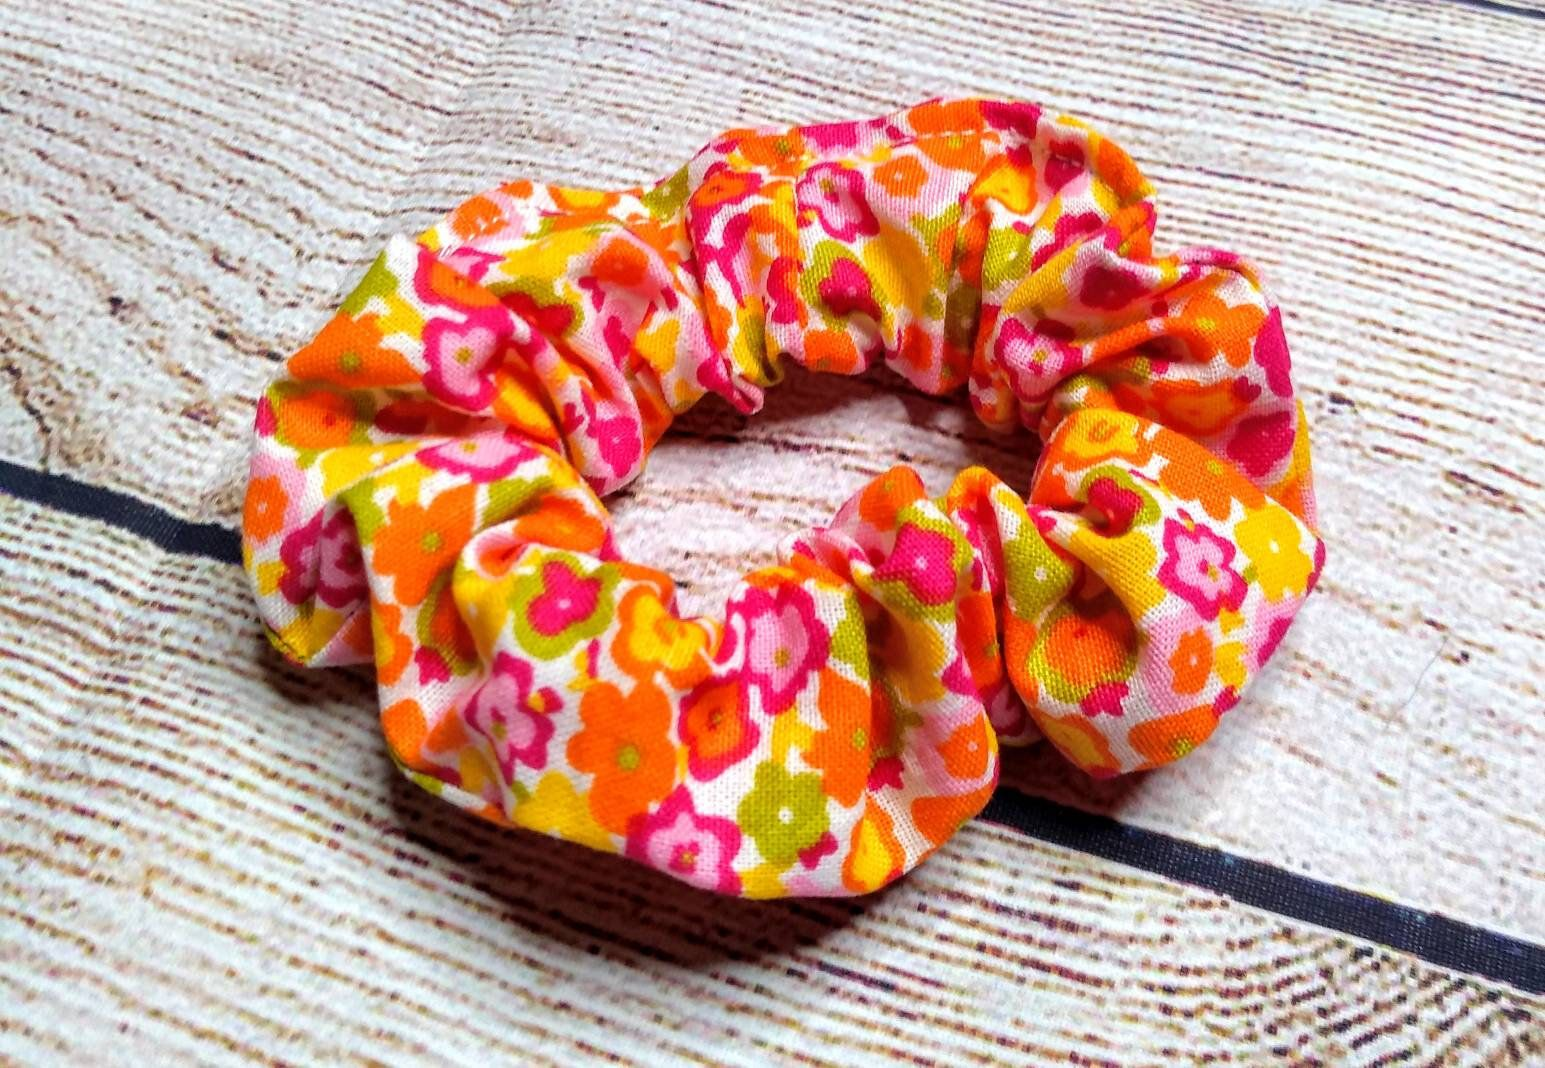 Hair scrunchy, floral hair scrunchy, messy bun holder, gift for girl, stocking stuffers, hair accessories, scrunchies, Christmas gift #hairscrunchie